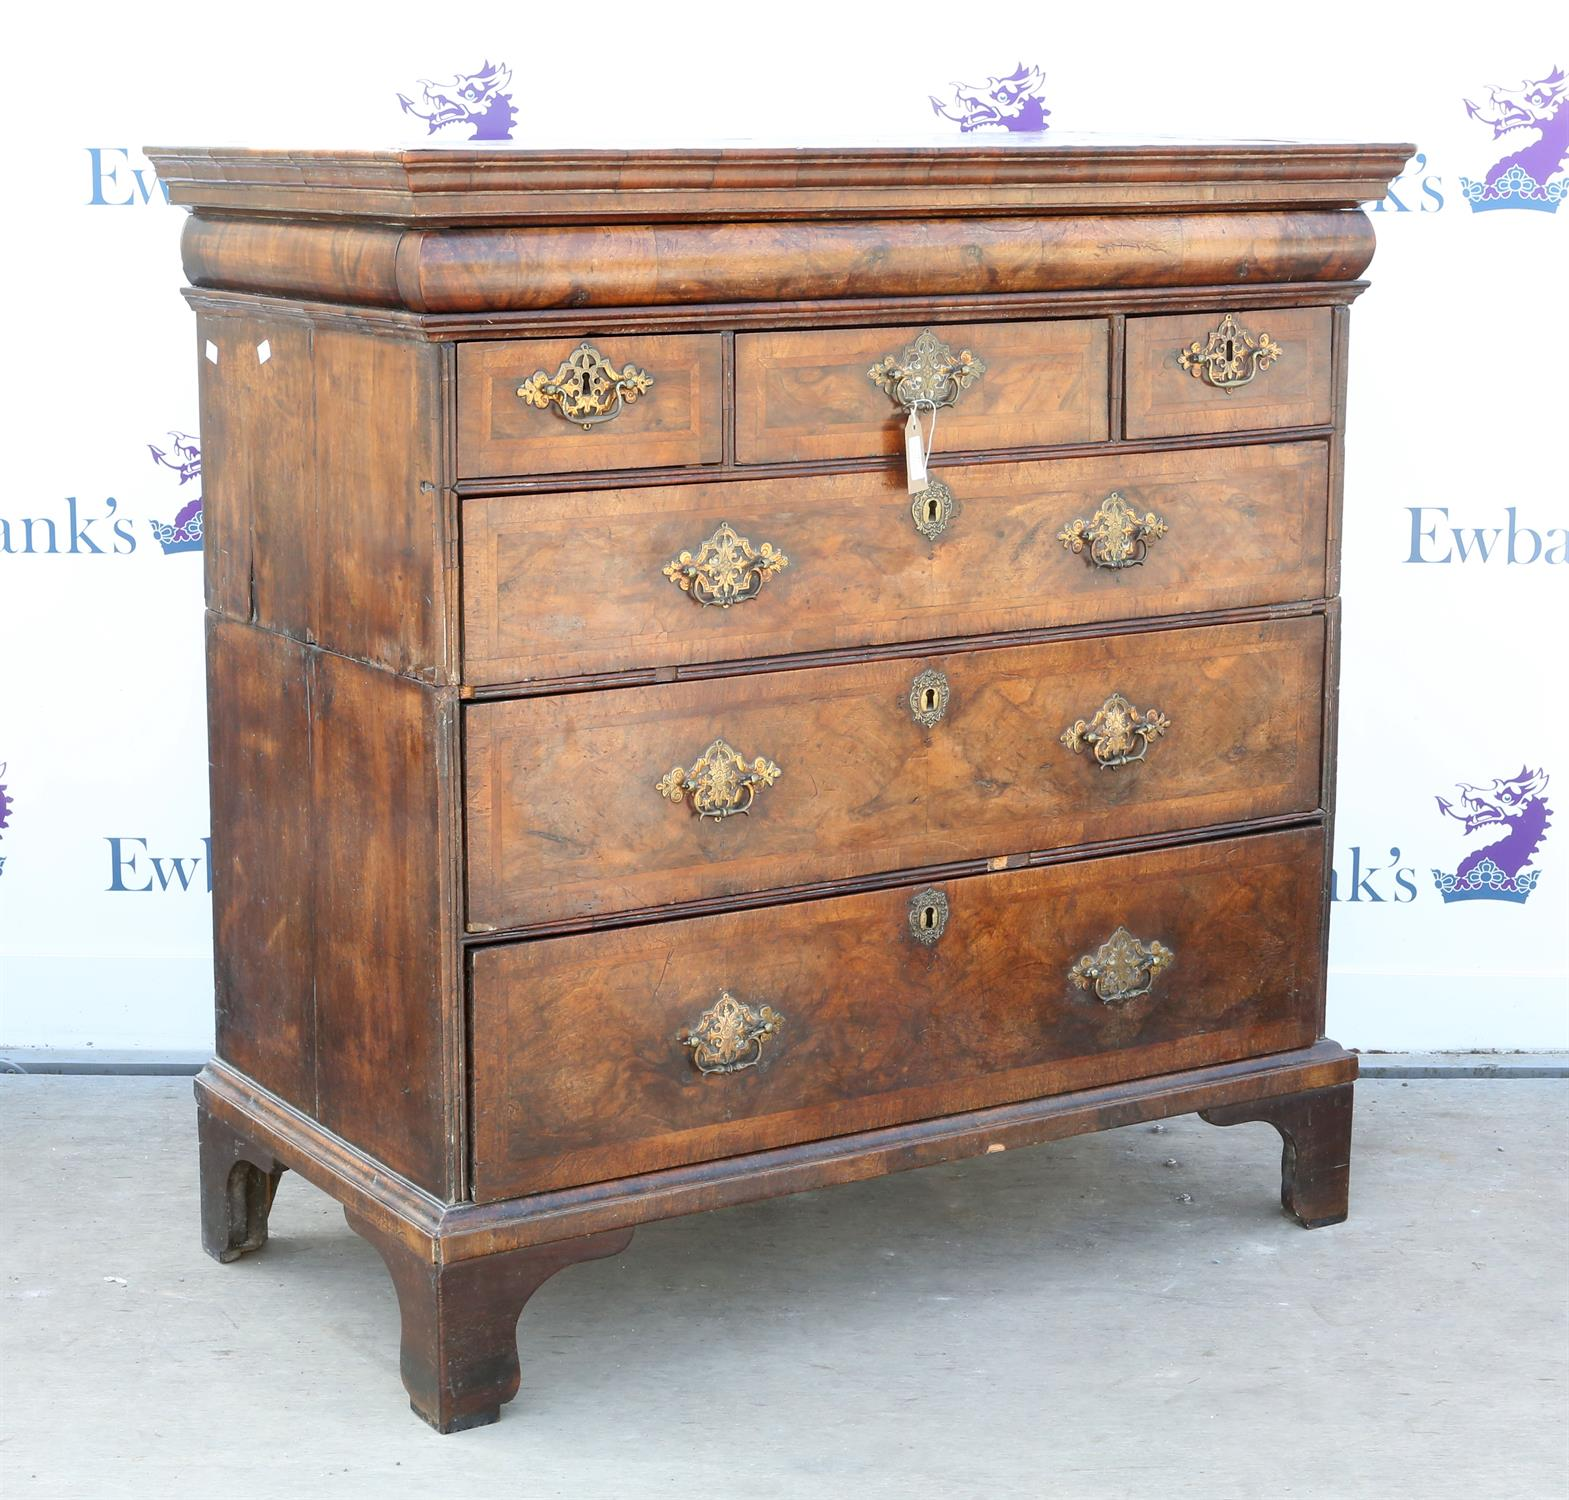 19th century mahogany chest of drawers, with single frieze drawer above three short over three long - Image 2 of 2